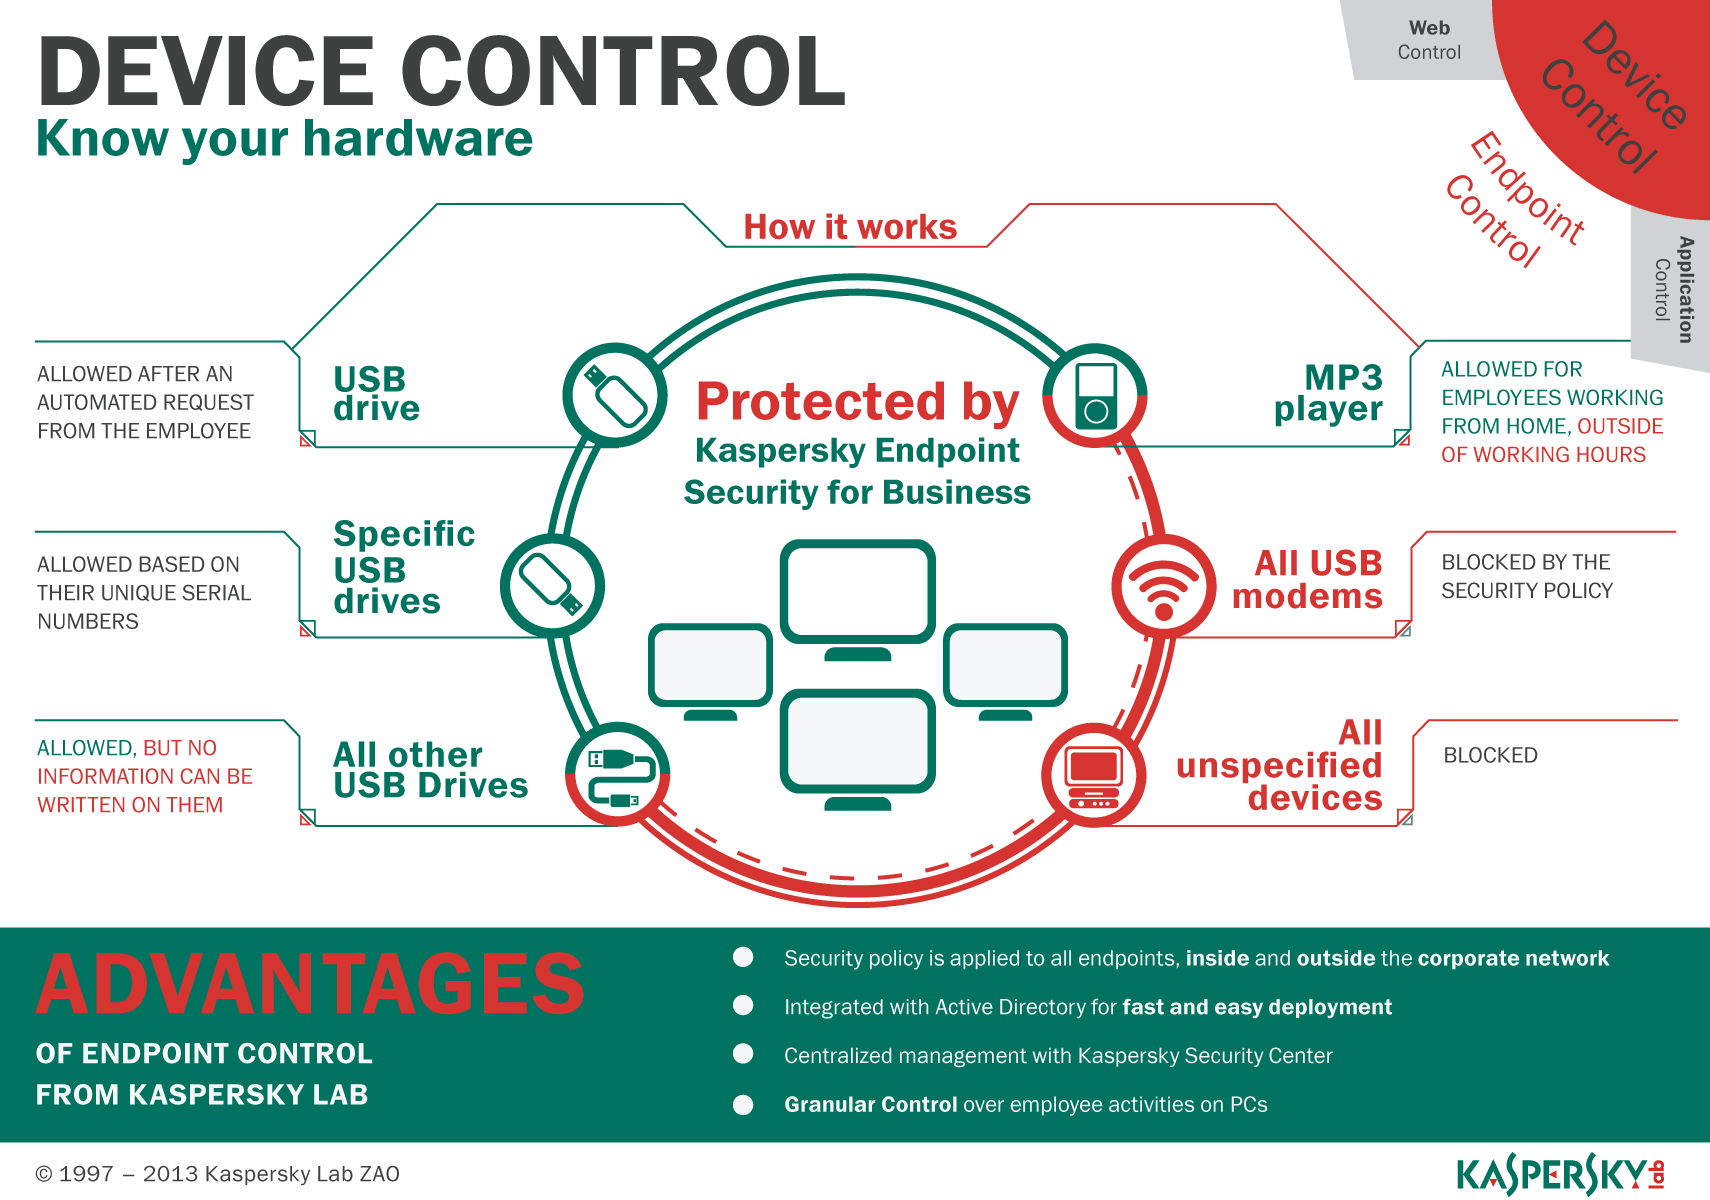 Device Control Infographic